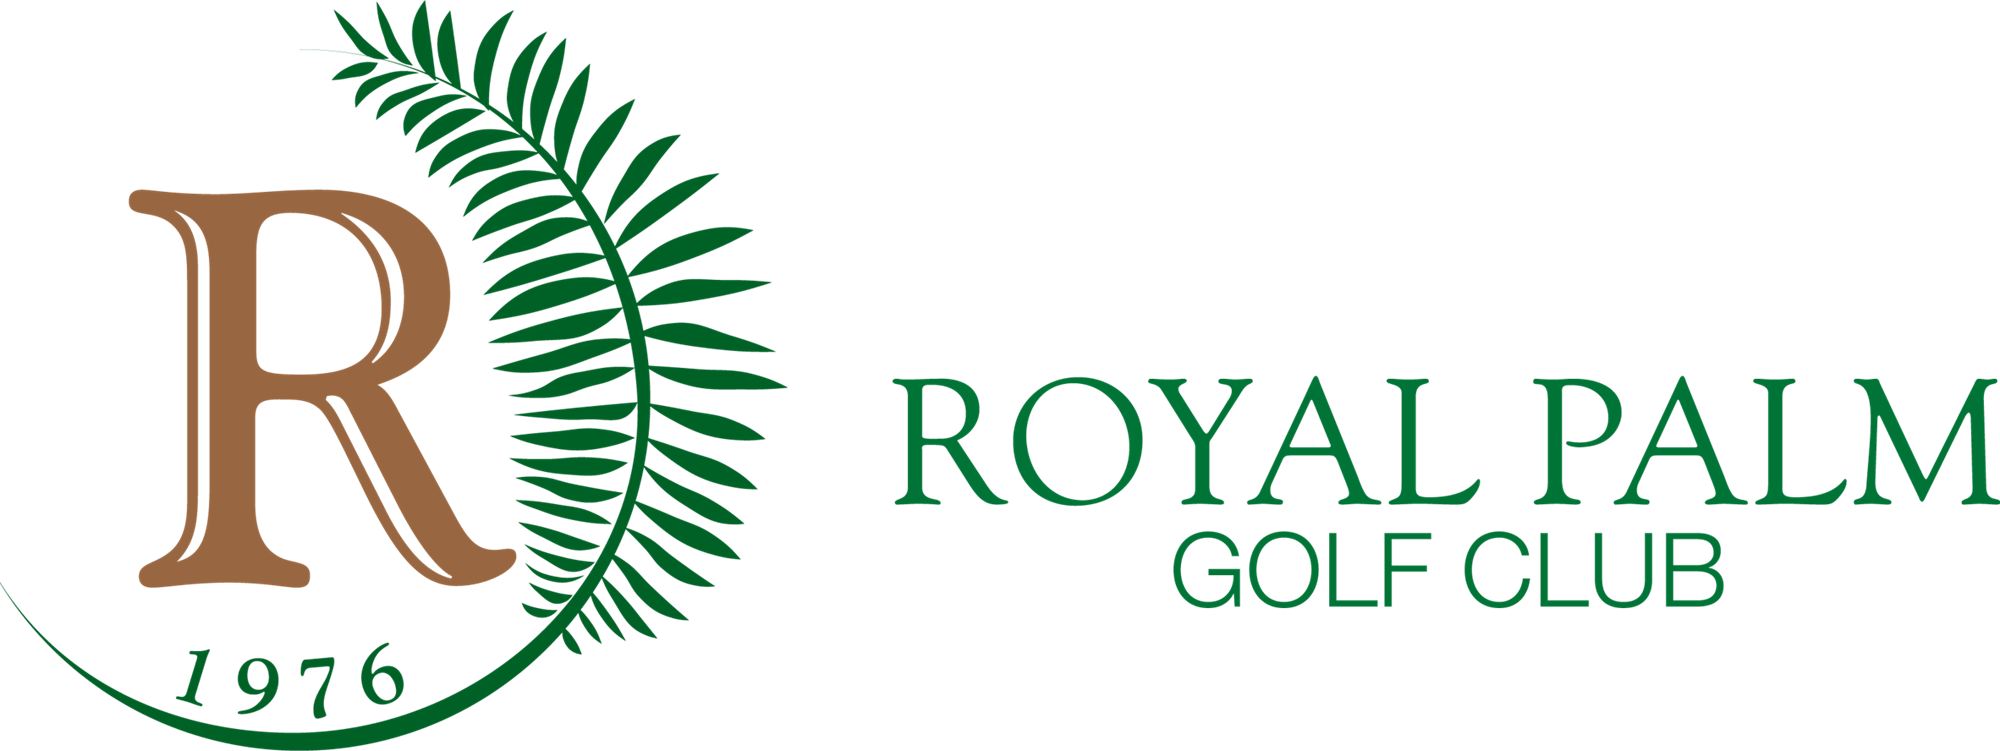 Royal Palm Golf Club Logo